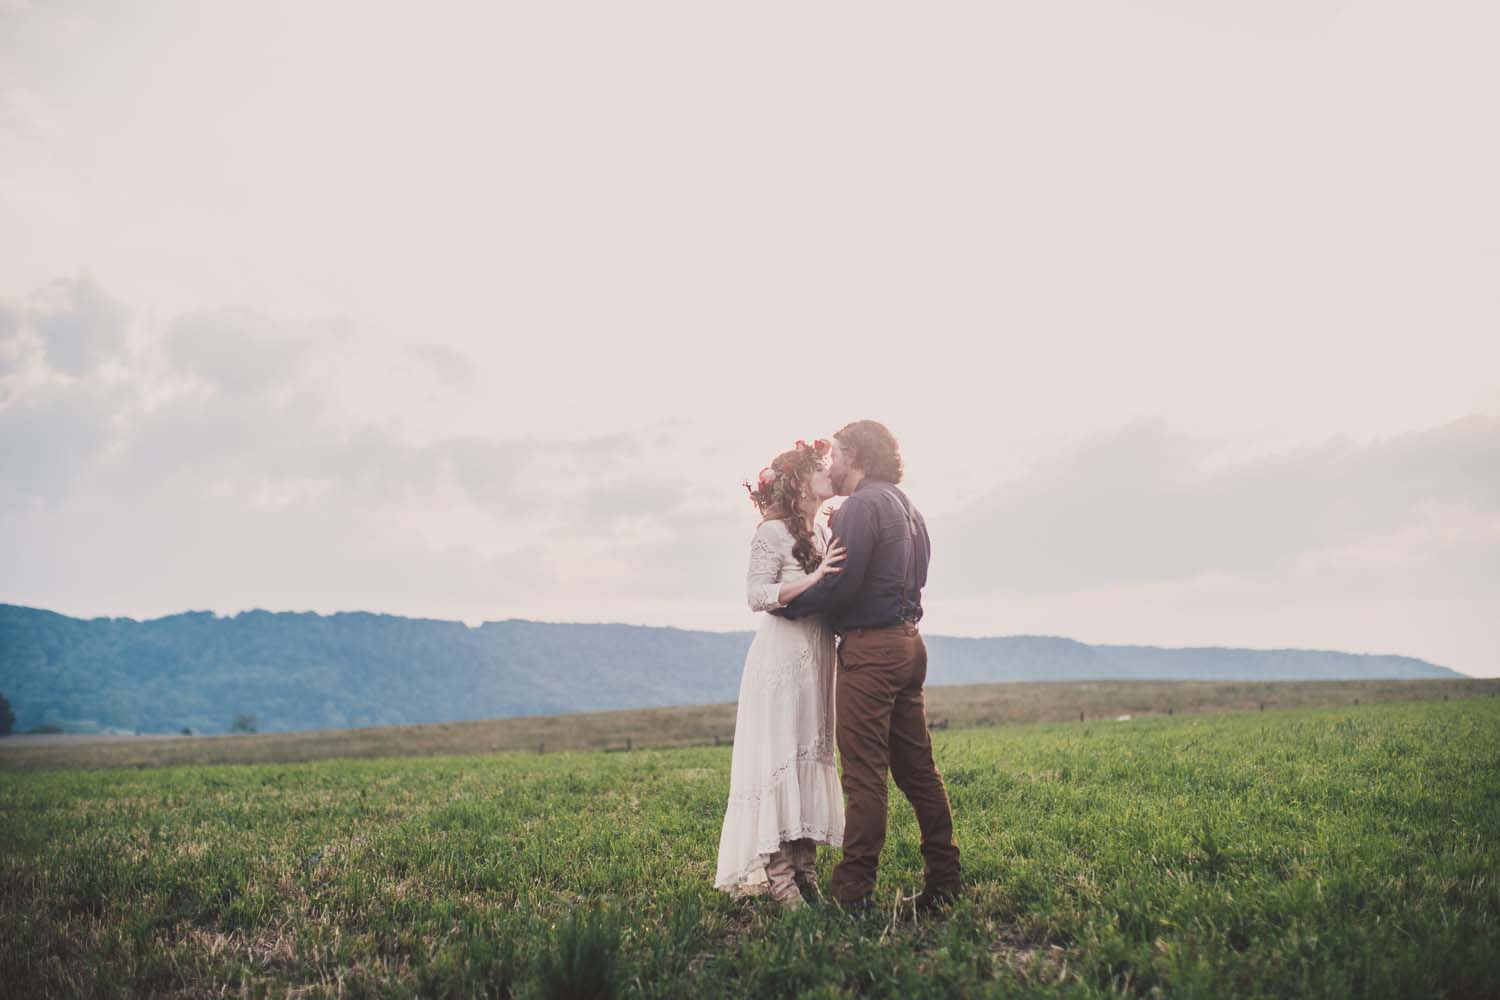 Holmes Wedding | Pangtography | Valley View Farms Weddings & Events